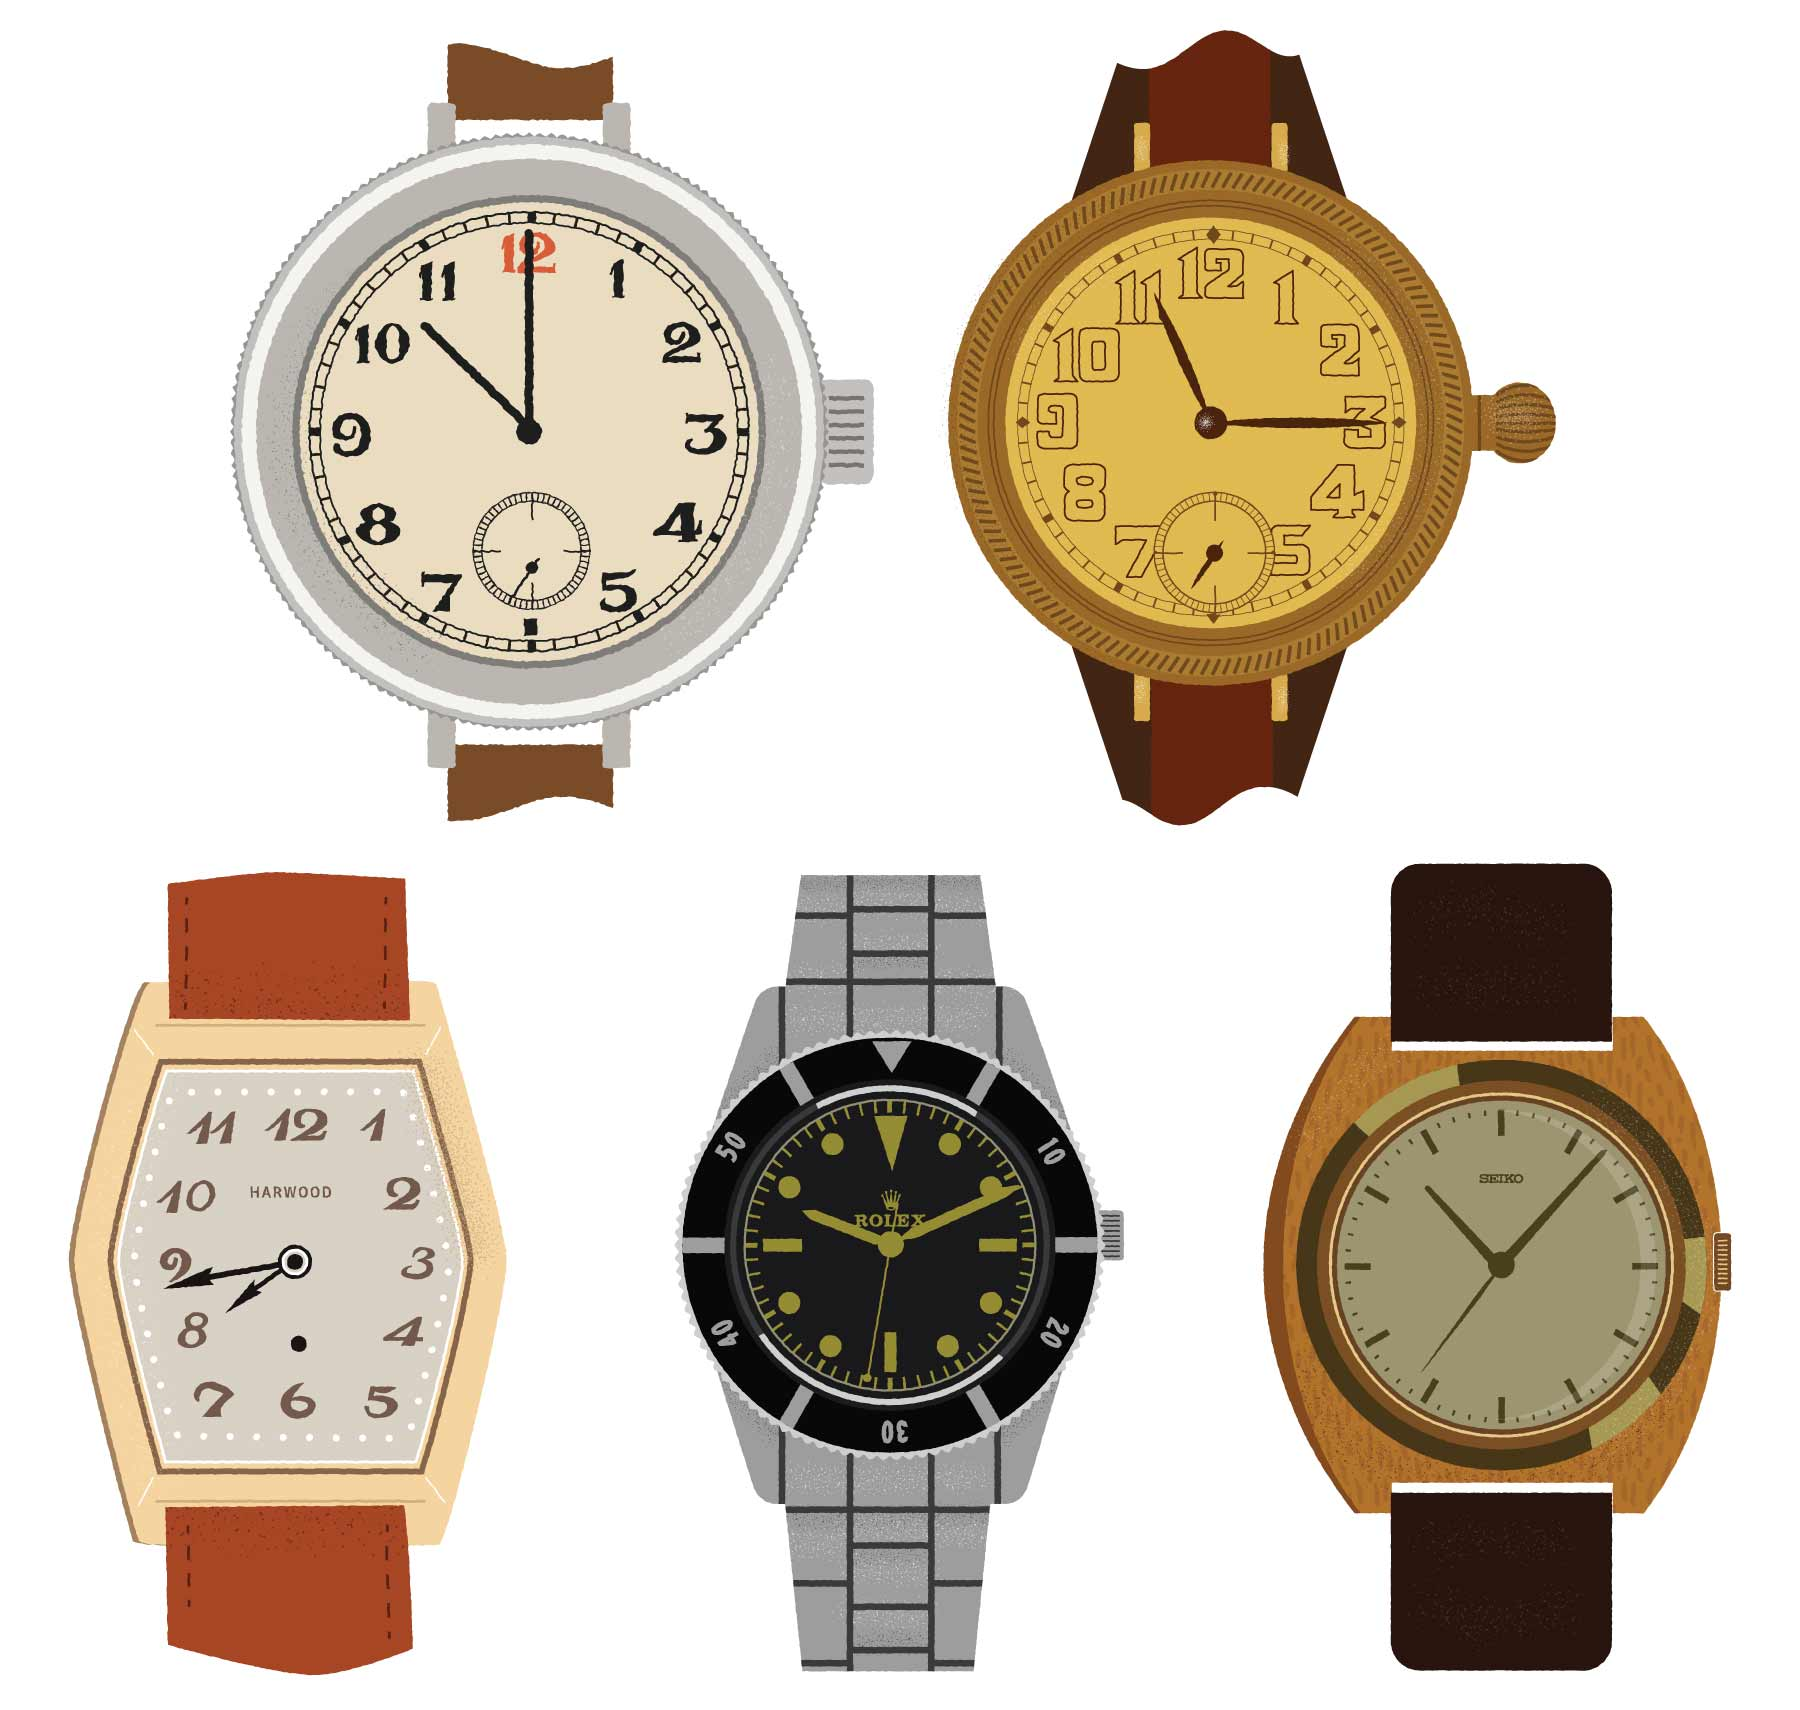 Vintage Watch Illustrations - Rolex, Harwood & Seiko